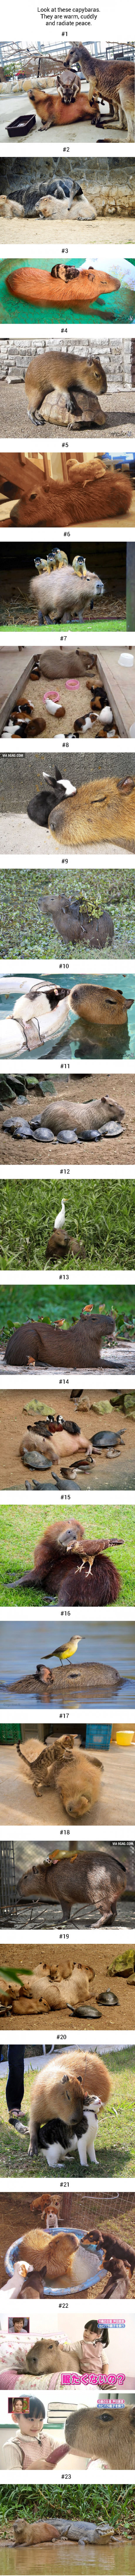 23 Photos Prove Capybara Can Befriend Every Other Species